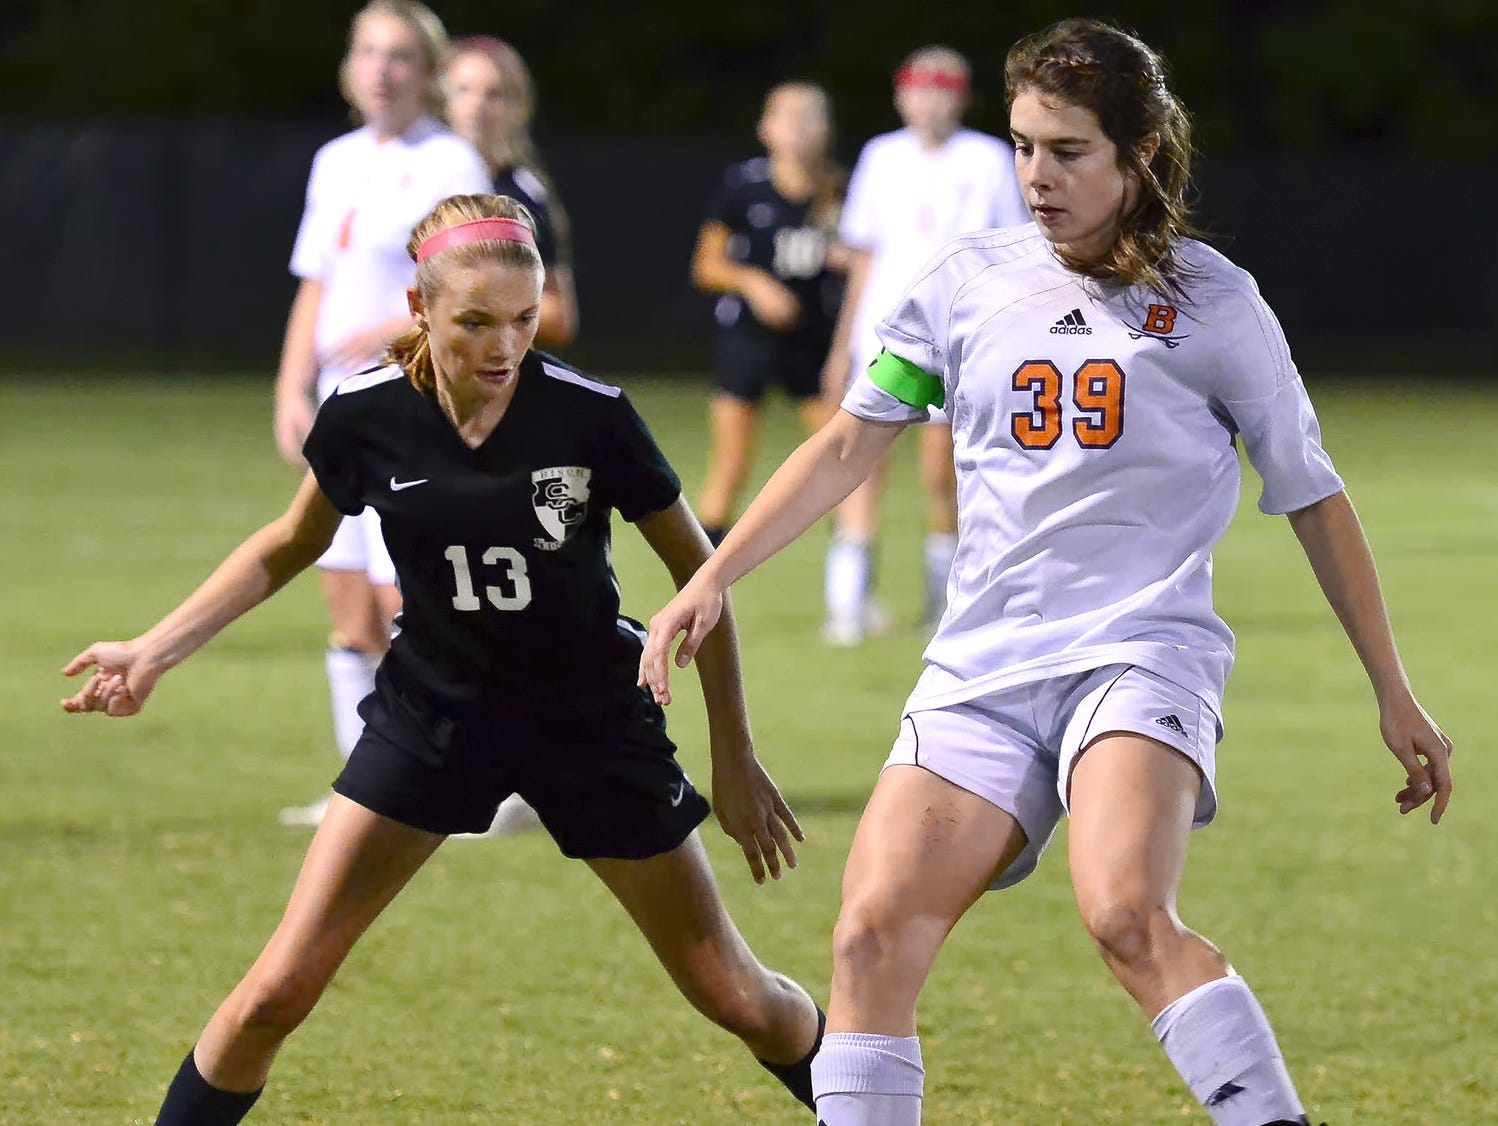 Beech High senior Kendon Curtis (39) maintains possession amidst pressure from Station Camp freshman Carolyn Fitch.